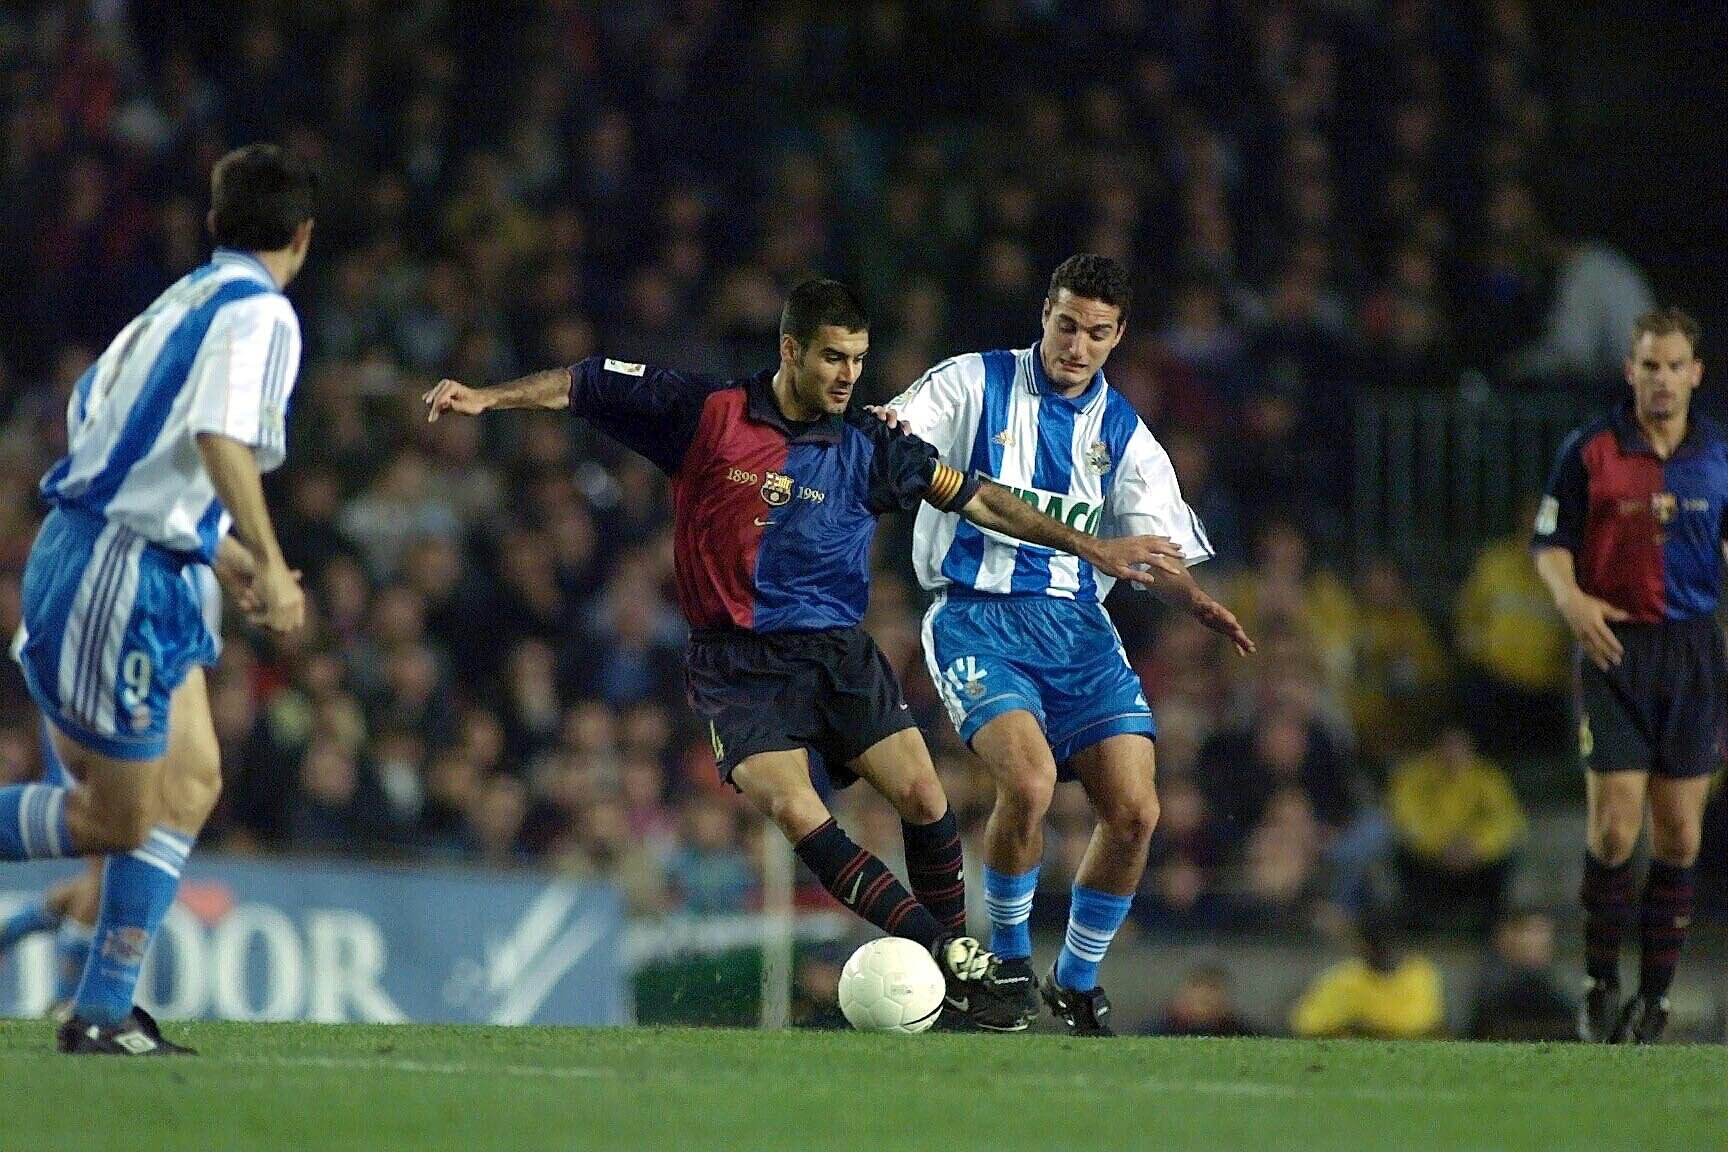 ARCHIV MATERIAL - FC BARCELONE-LA COROGNE, im Bild ARCHIV MATERIAL - CHPT D'ESPAGNE 2000, guardiola josep, scaloni lionel. EXPA Pictures © 2019, PhotoCredit: EXPA/ Pressesports/ BARDOU DANIEL *****ATTENTION - for AUT, SLO, CRO, SRB, BIH, MAZ, POL only***** FOT. EXPA / NEWSPIX.PL AUSTRIA, Italy, Spain, Slovenia, Serbia, Croatia, Germany, UK, USA and Sweden OUT! --- Newspix.pl *** Local Caption *** www.newspix.pl mail us: info@newspix.pl call us: 0048 022 23 22 222 --- Polish Picture Agency by Ringier Axel Springer Poland